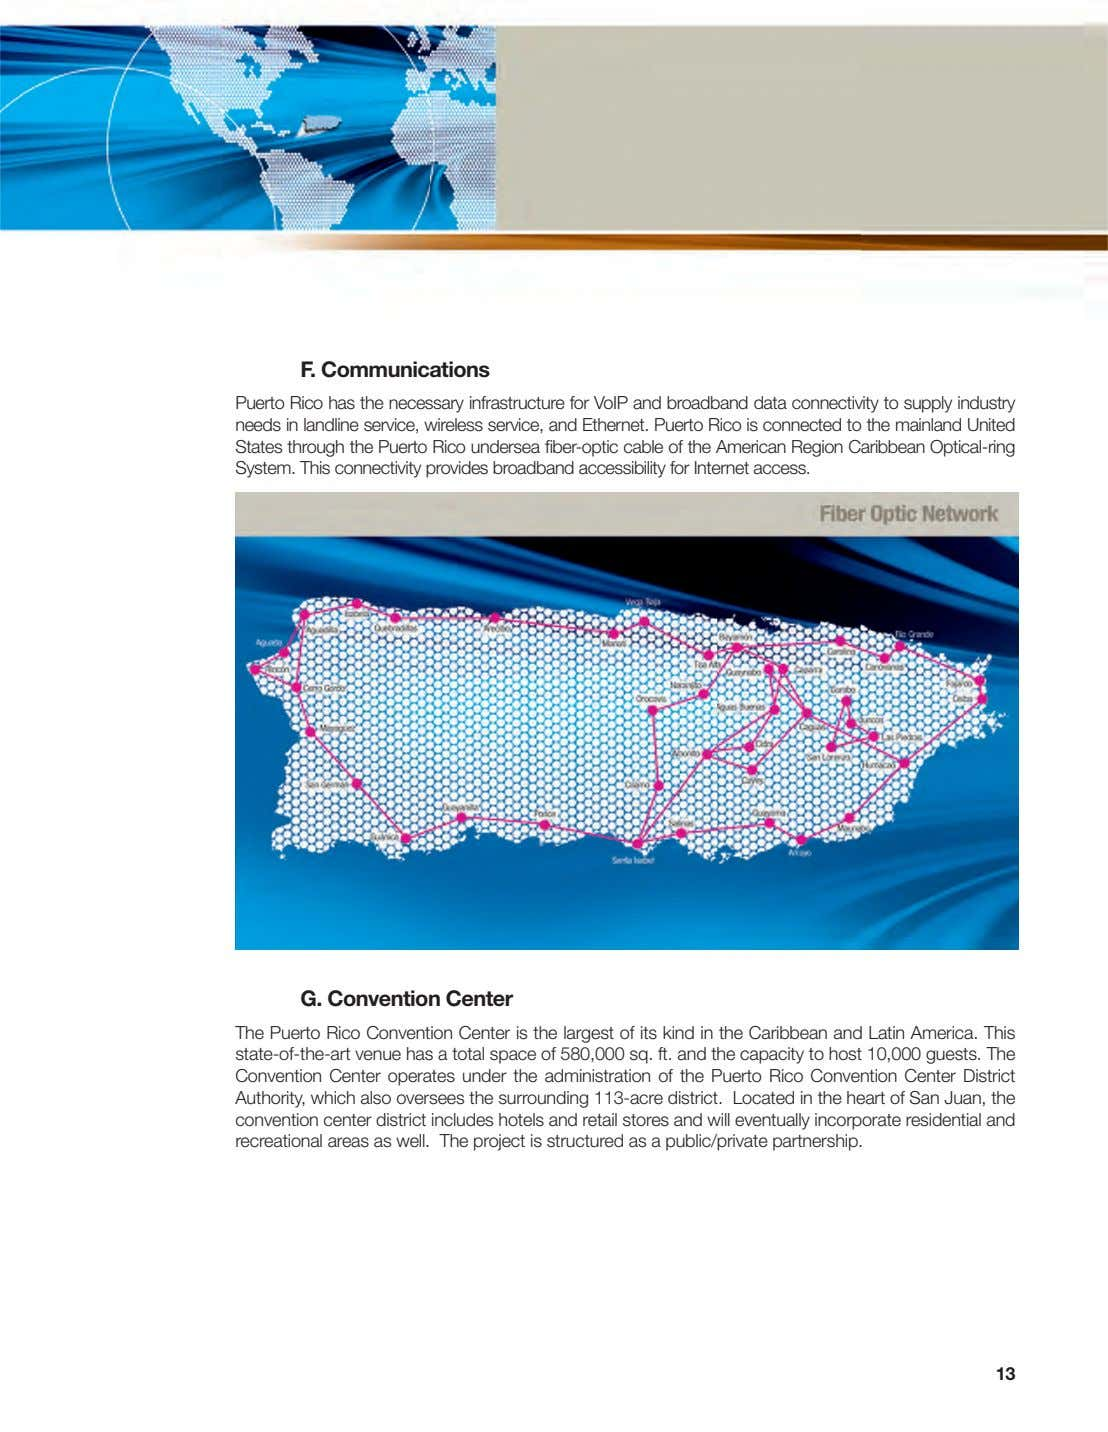 F. Communications Puerto Rico has the necessary infrastructure for VoIP and broadband data connectivity to